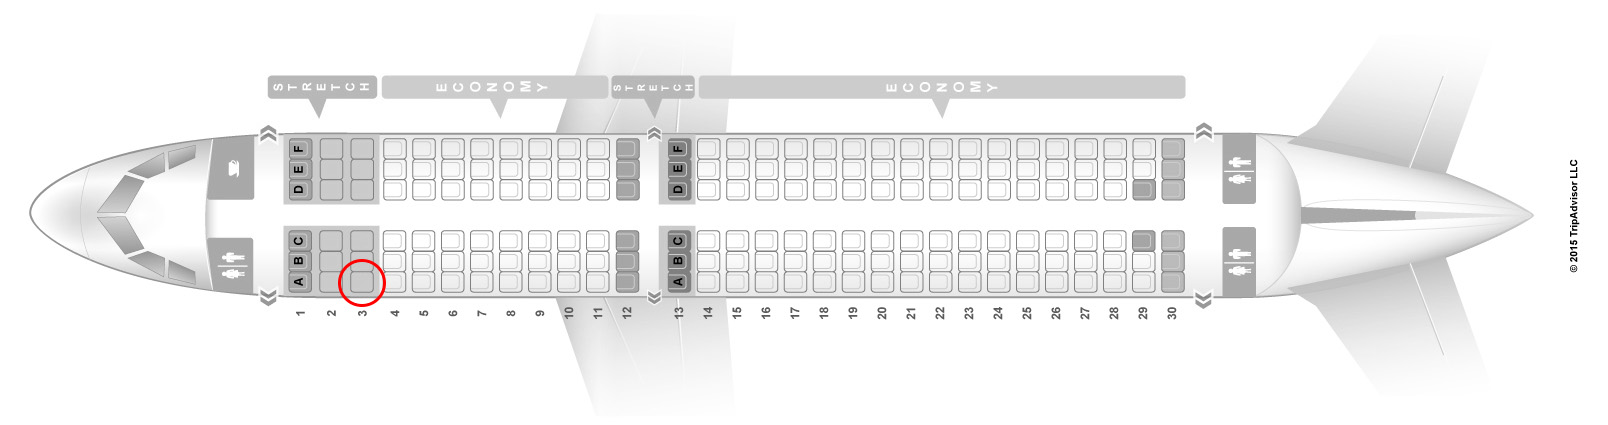 Frontier Airlines A320neo seat map